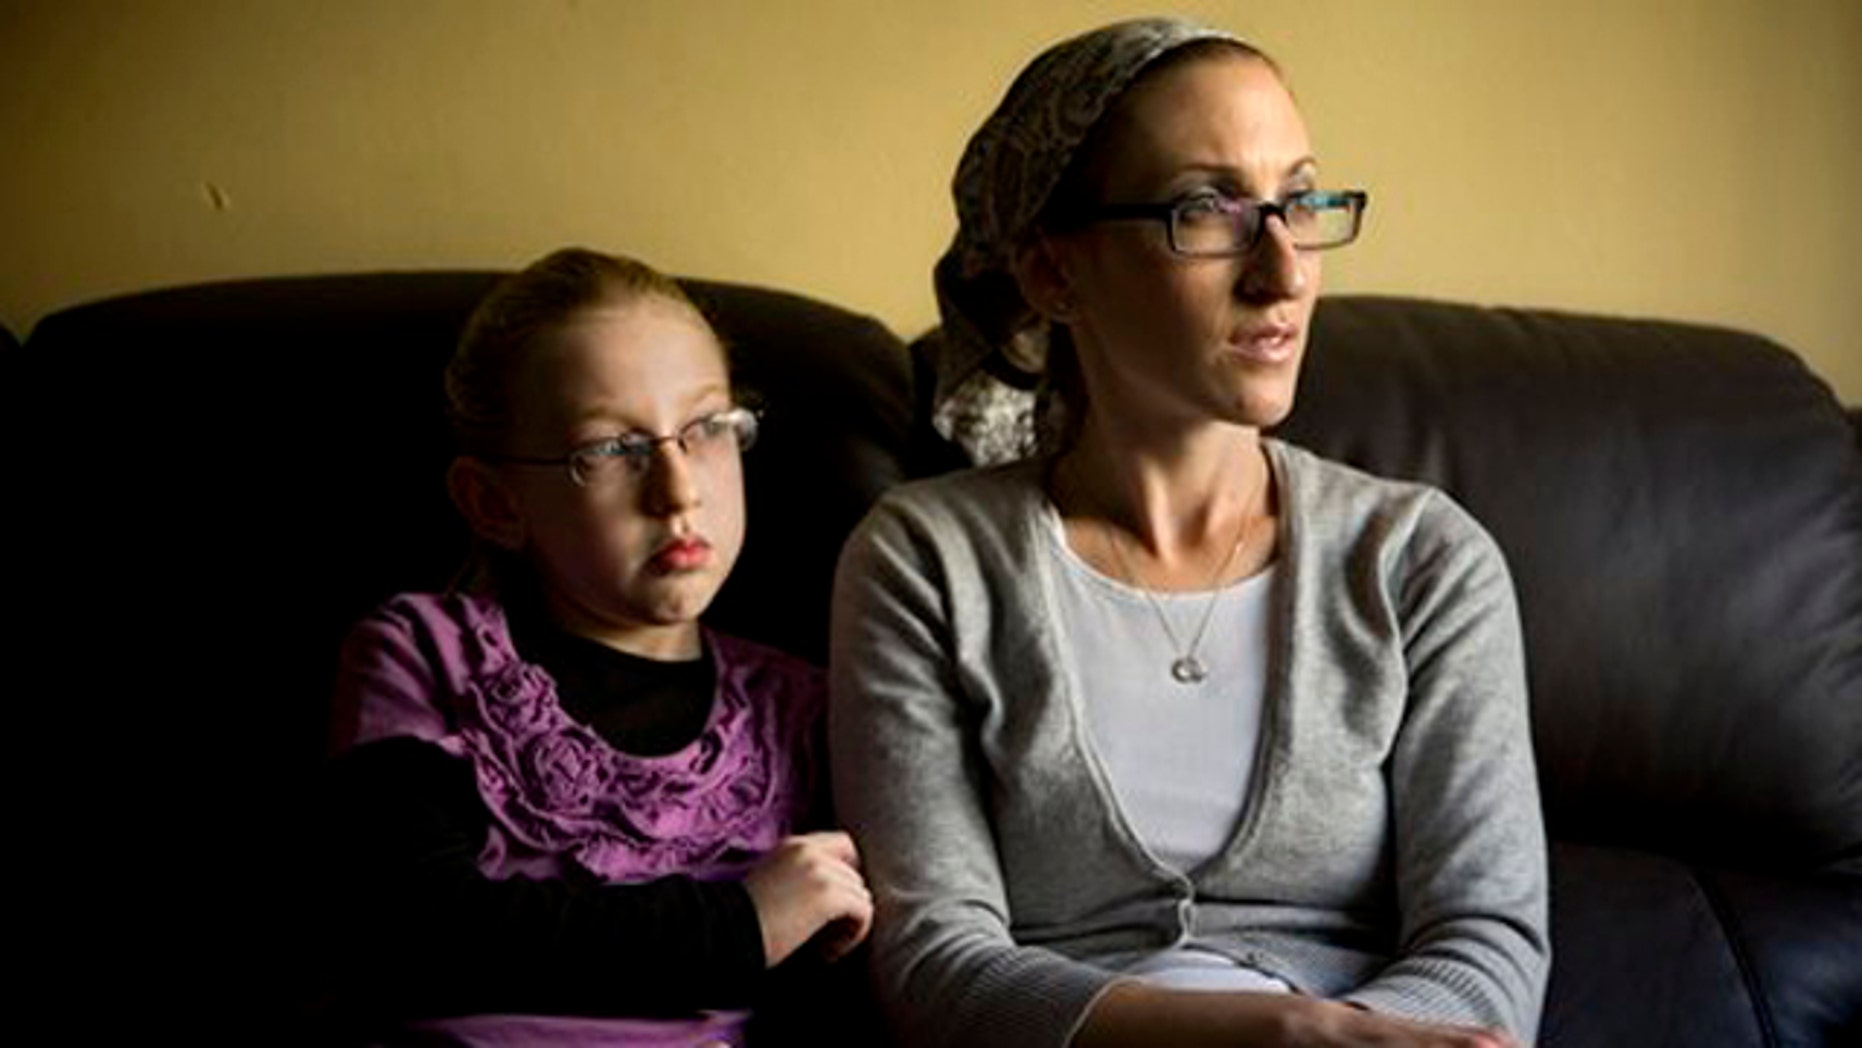 December 26, 2011: Naama Margolese, 8, sits with her mother Hadassa in their home in the central Israeli town of Beit Shemesh.